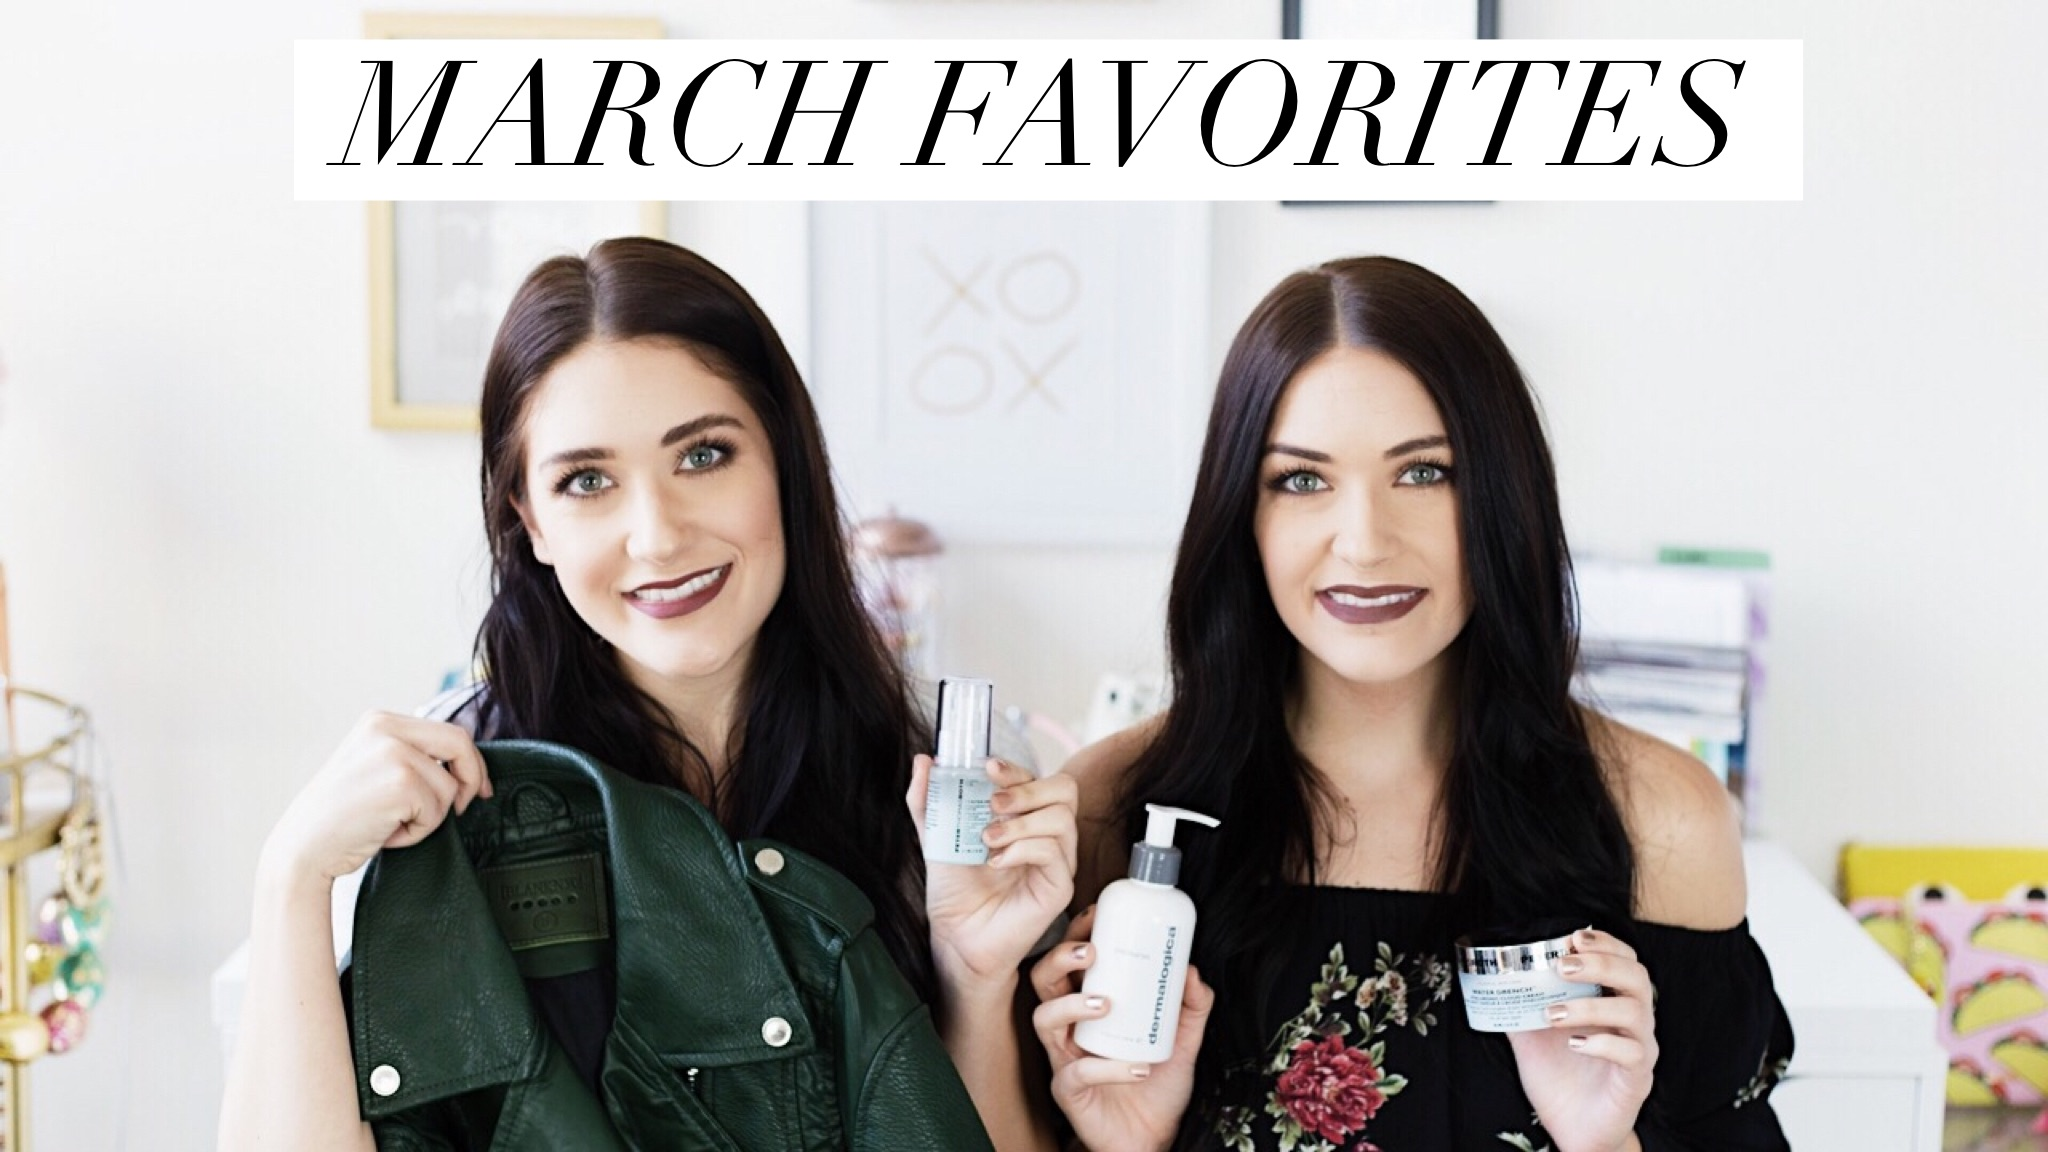 March Favorites | Twinspiration